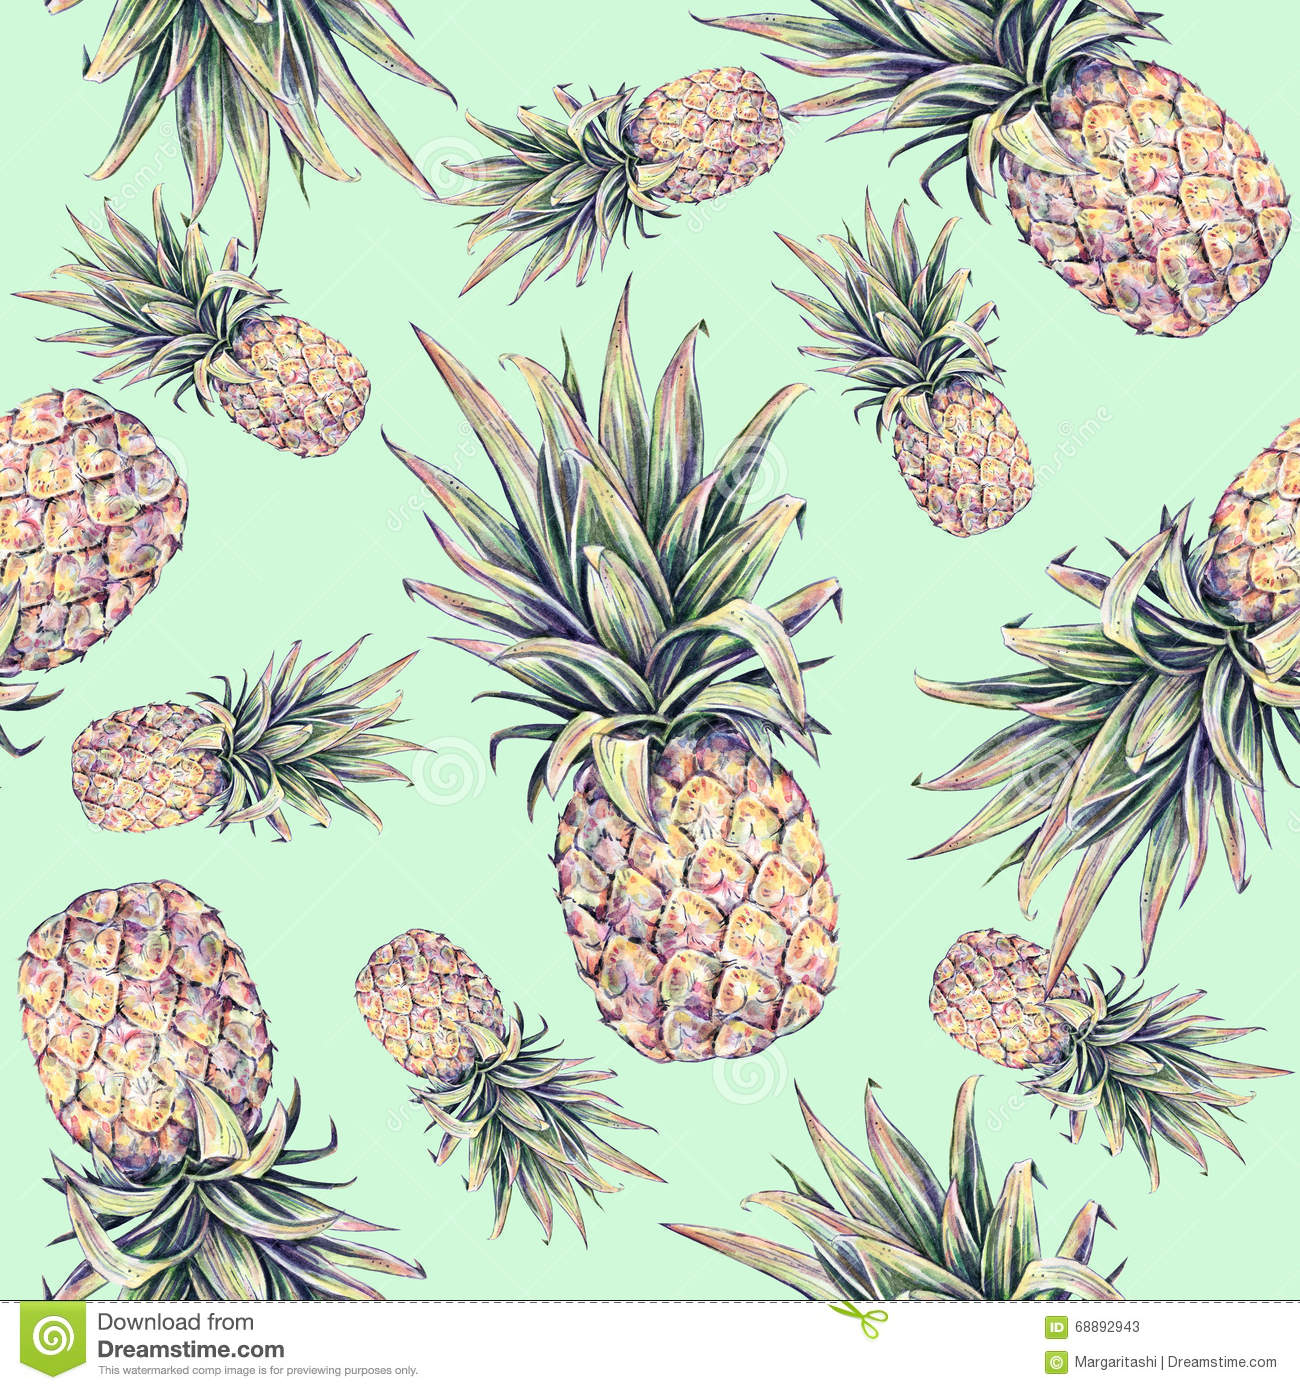 pineapples on a light green background watercolor